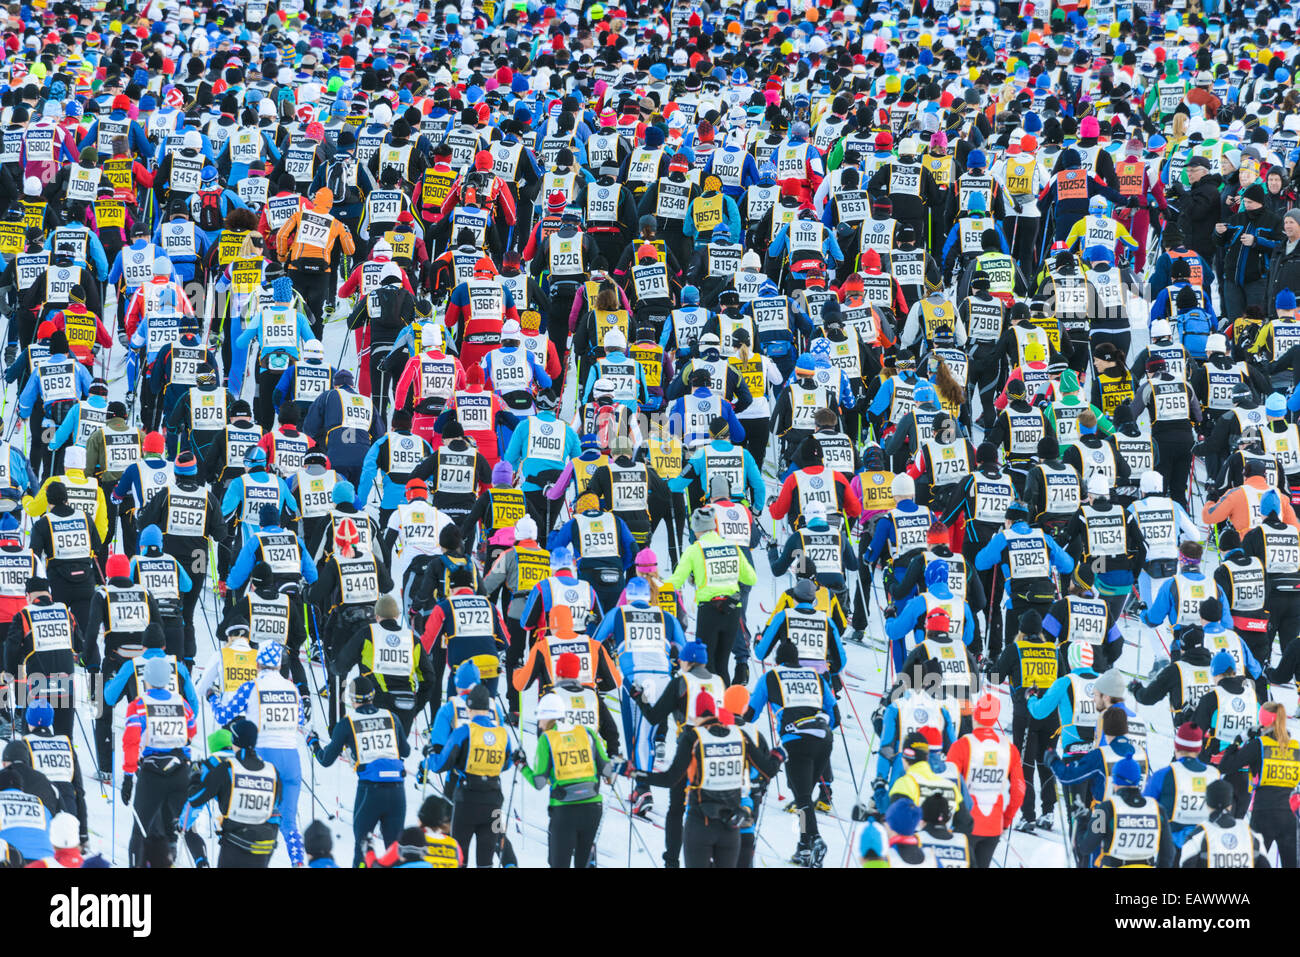 Crowd of cross-country skiers at Vasaloppet race - Stock Image